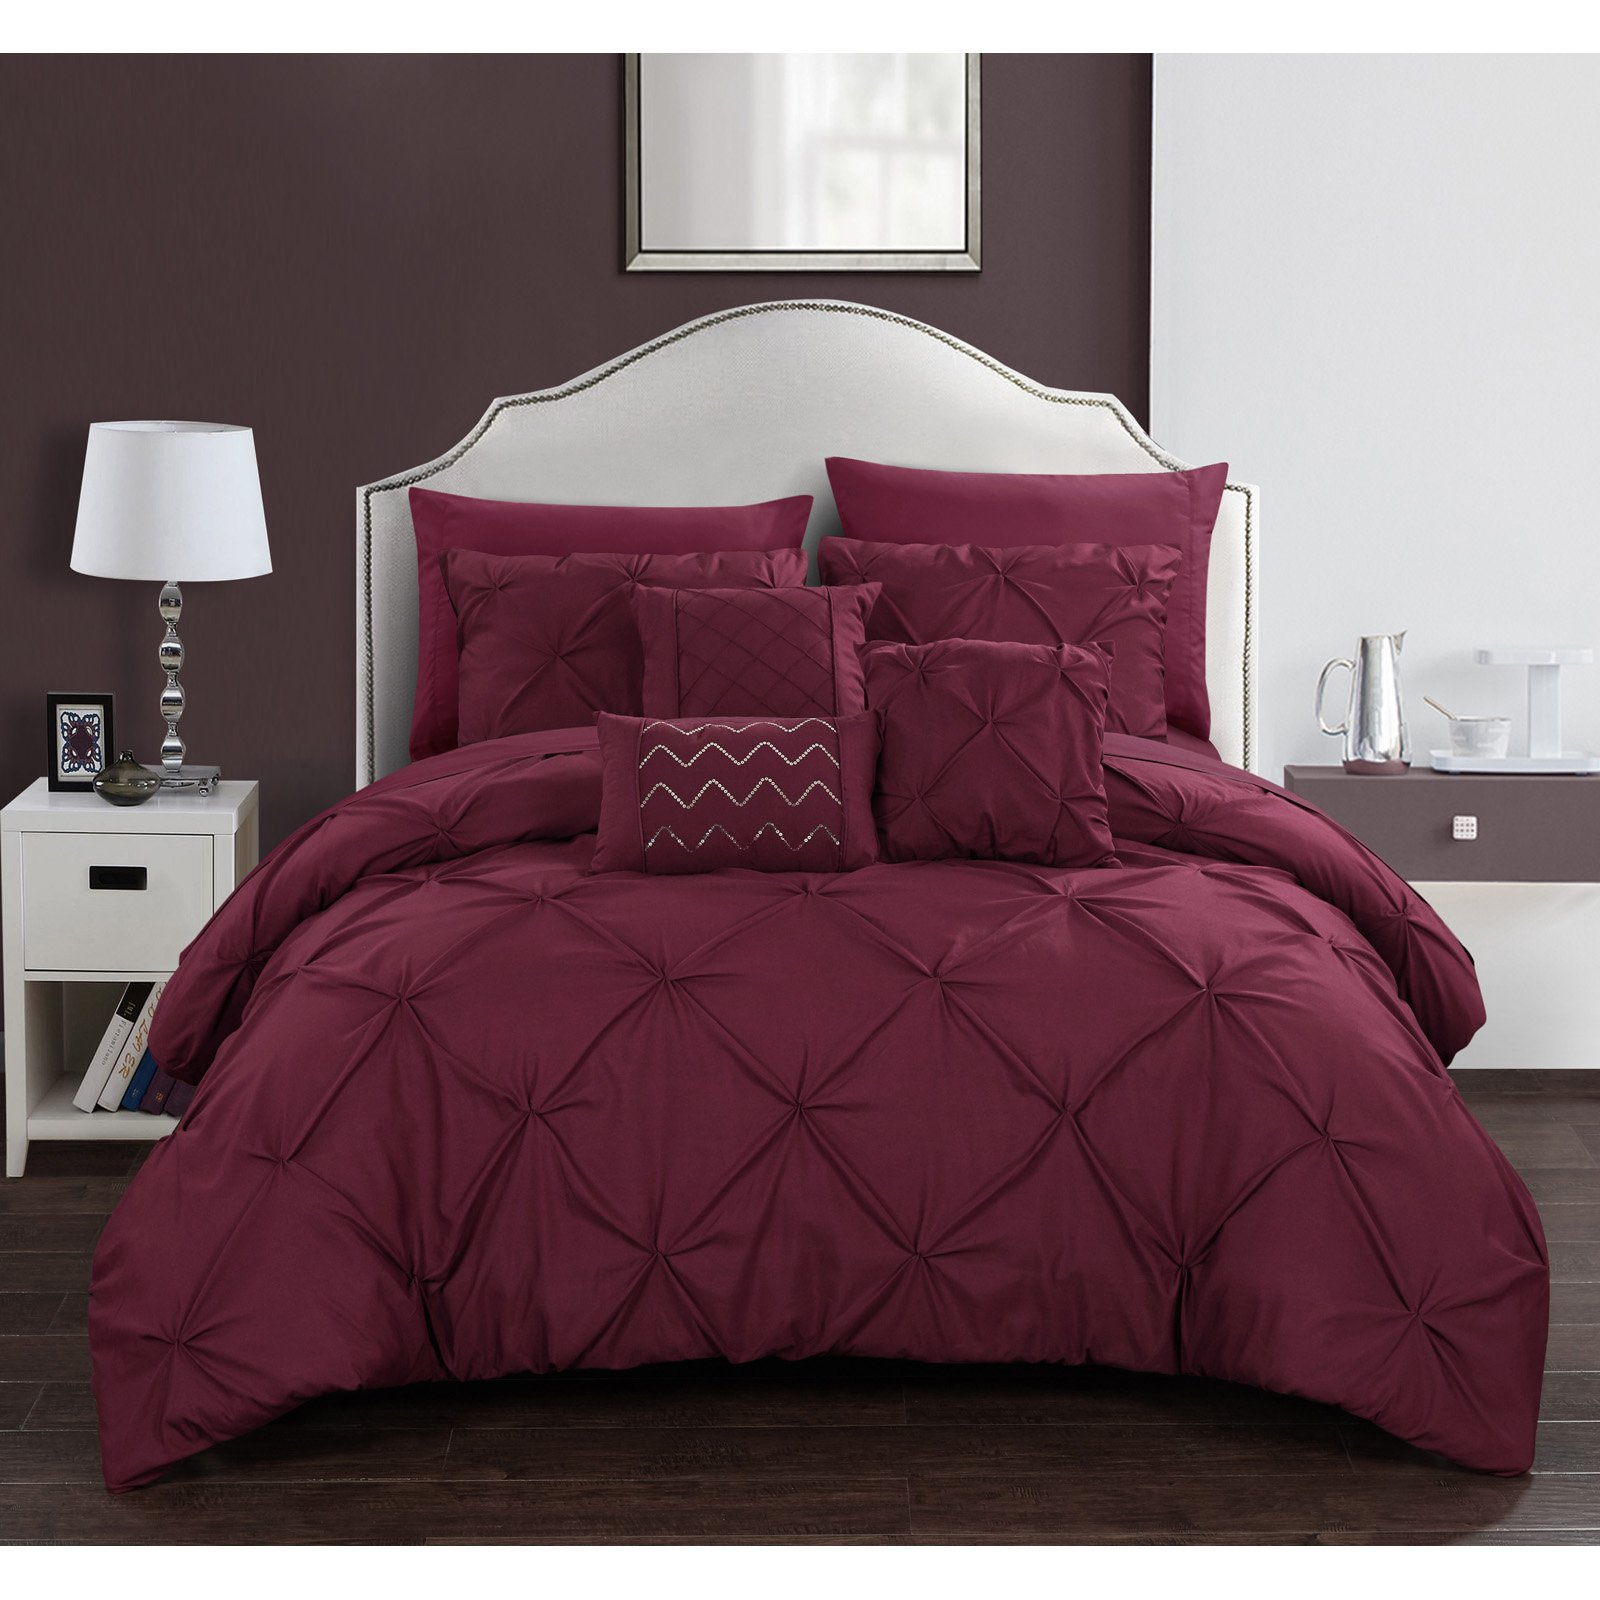 Chic Home Valentina 10 Piece Bed in a Bag Comforter Set